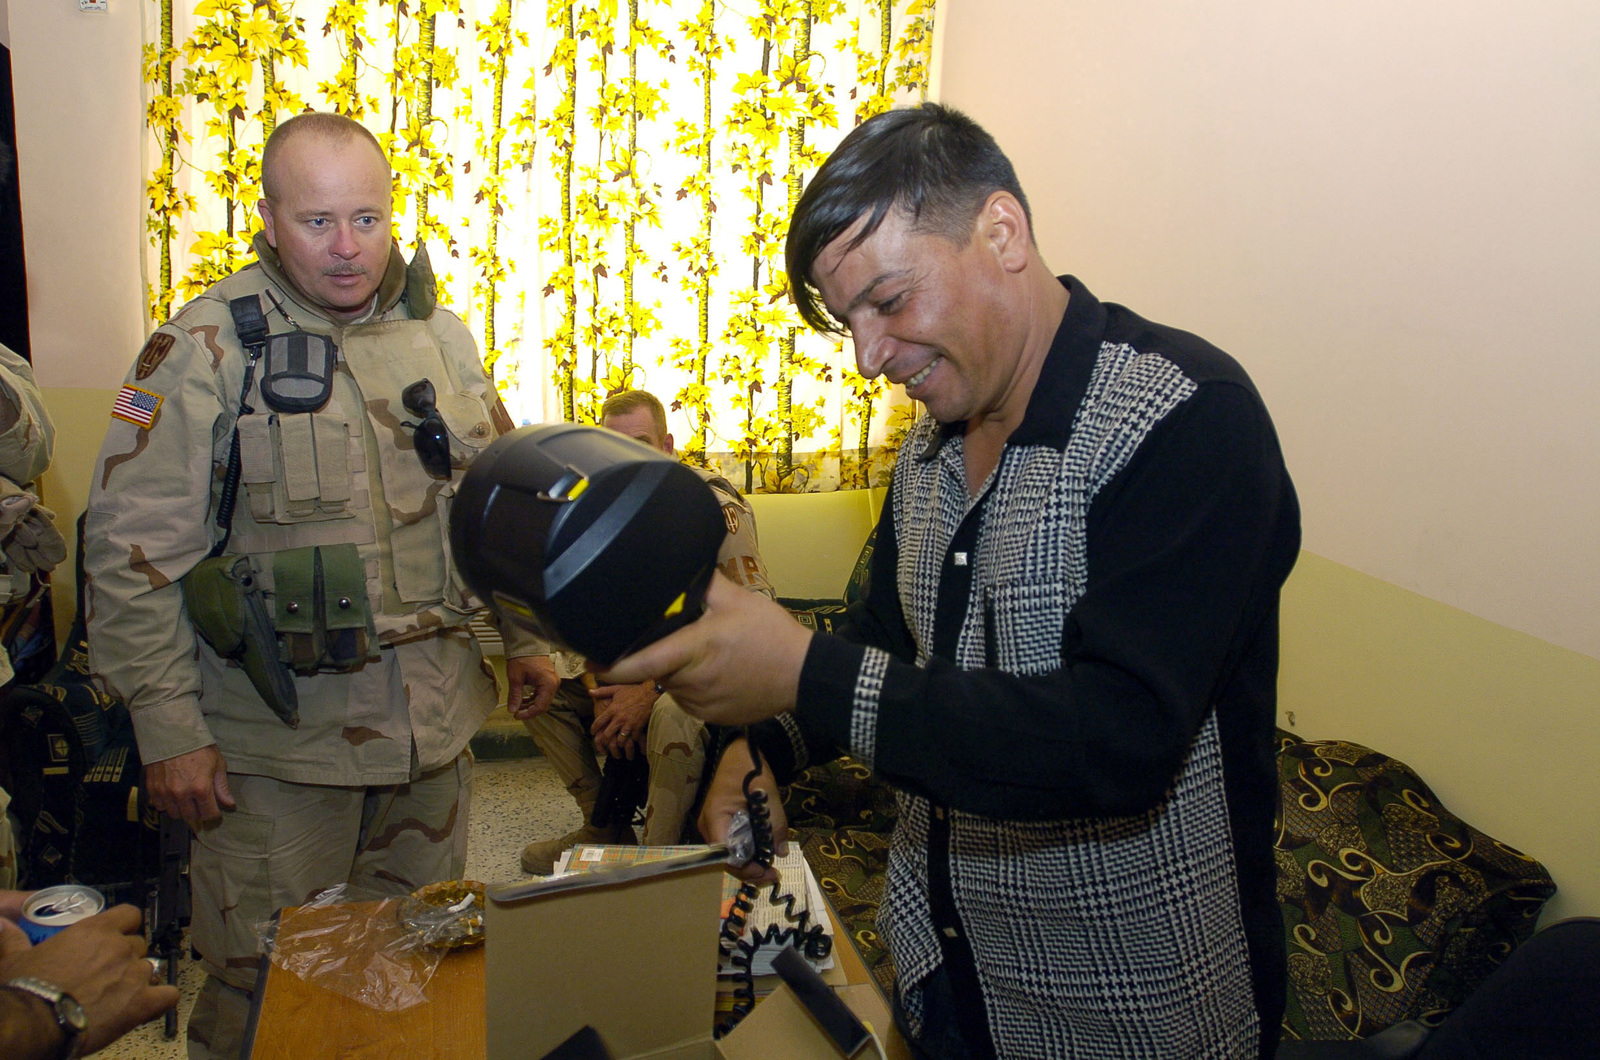 SGT. Anthony Blair from the 940th MP Company out of Walton Kentucky, delevers 9mm ammunation and Spot Lights to an Iraqi Police station during a visit for the purpose of assesing the progress of the Iraqi Police in Dawaniyah on June 21, 2005, Al Dawaniyah, Iraq.(U.S. Army photo by SGT. Arthur Hamilton)(Released)